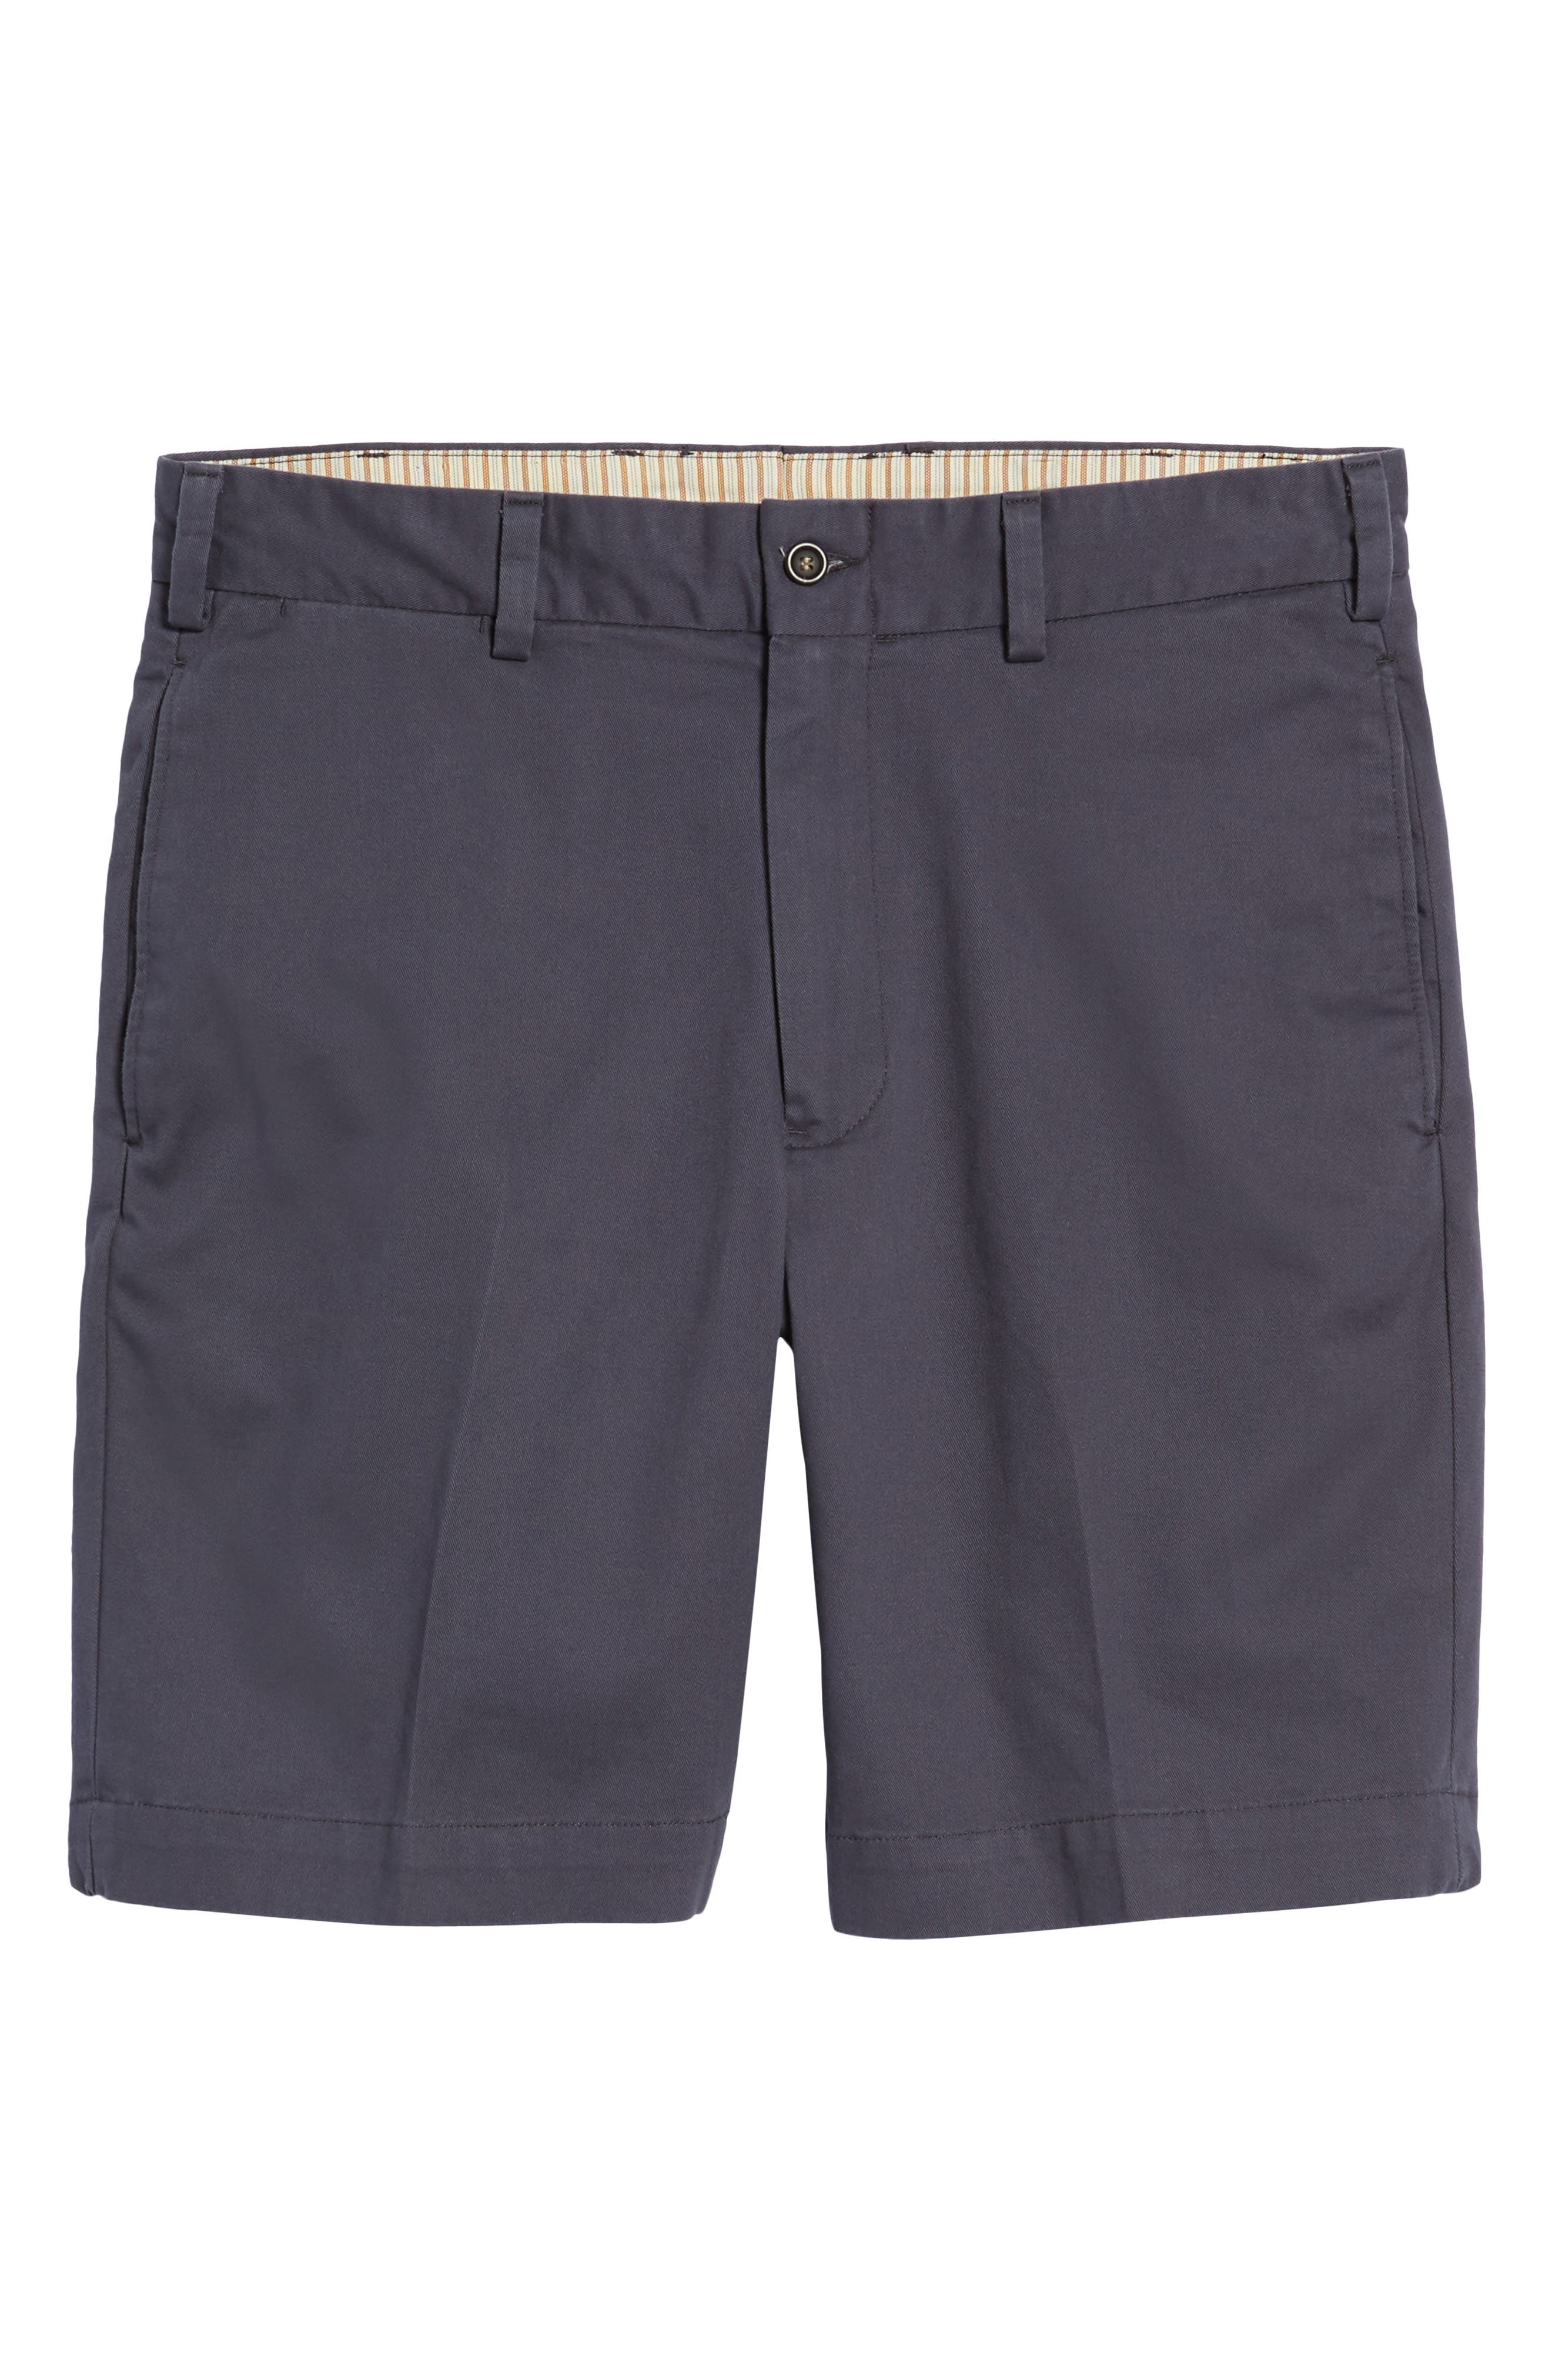 M2 Classic Fit Flat Front Vintage Twill Shorts,                             Alternate thumbnail 6, color,